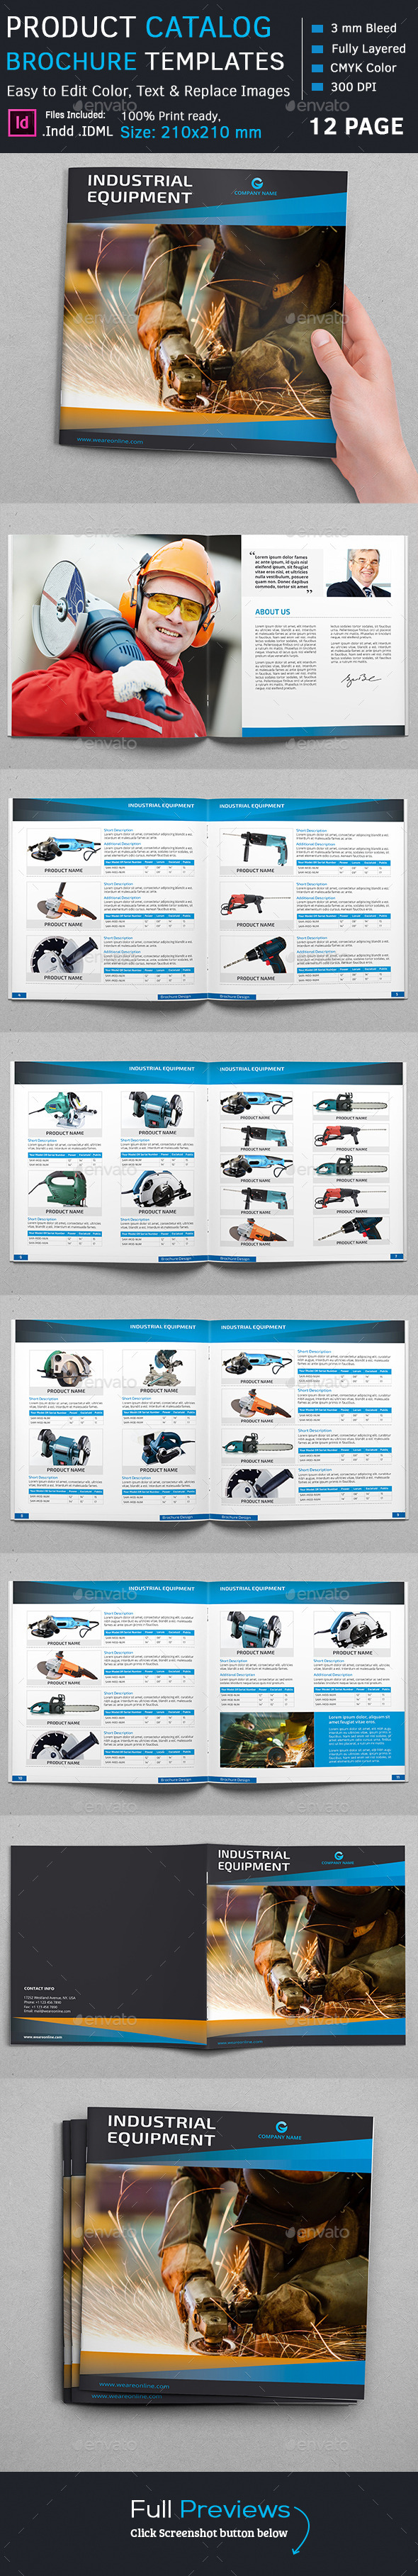 Product Catalog Square Brochure - Catalogs Brochures